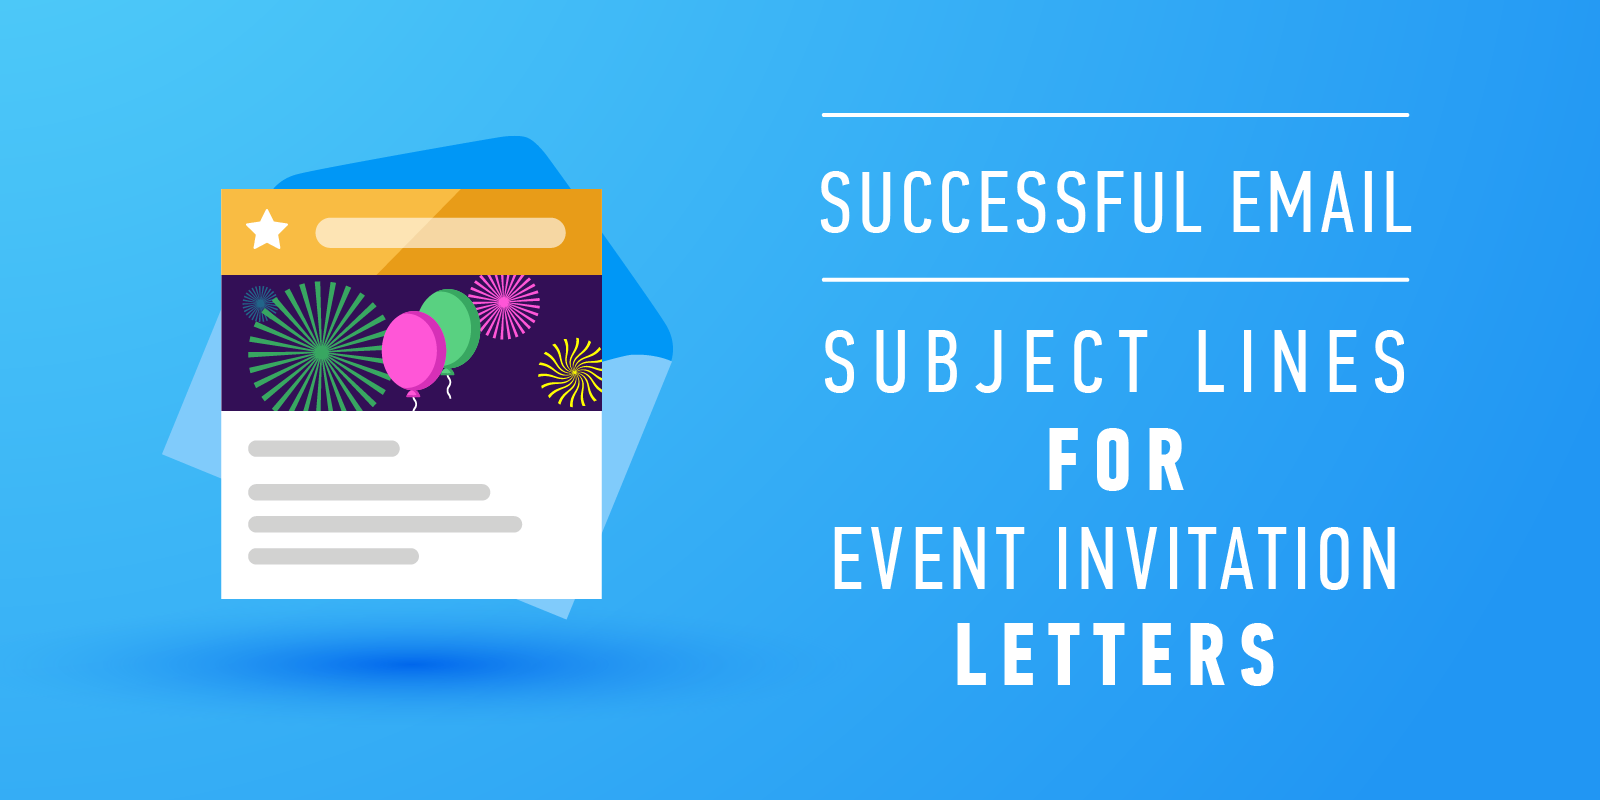 Successful email subject lines for event invitation letters are you going to arrange a music festival workshop sports event celebratory banquet or any other event on this account you badly need those who will stopboris Image collections